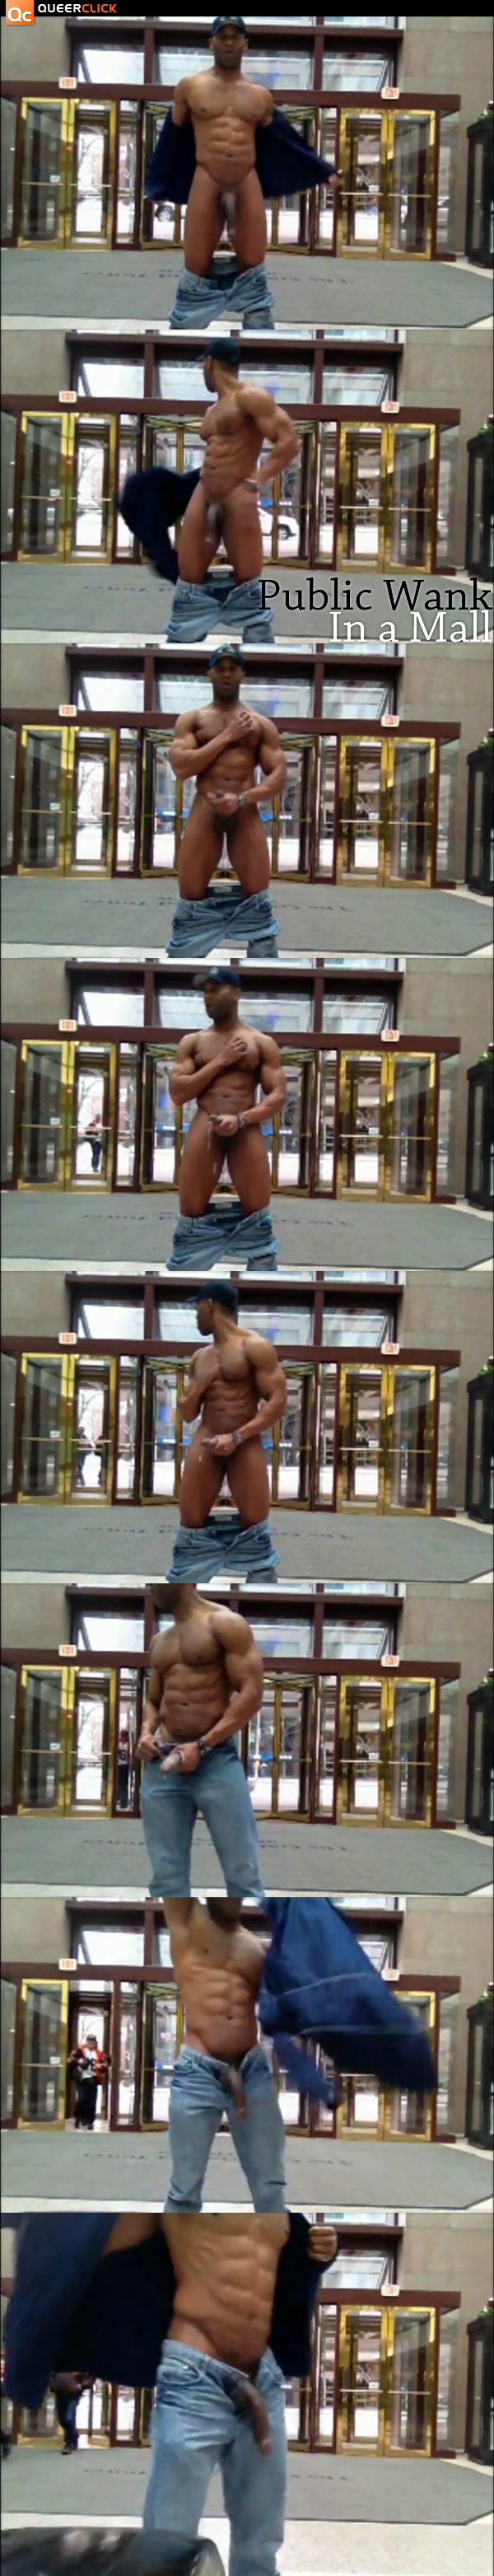 Wank: Small Mall Public J/O